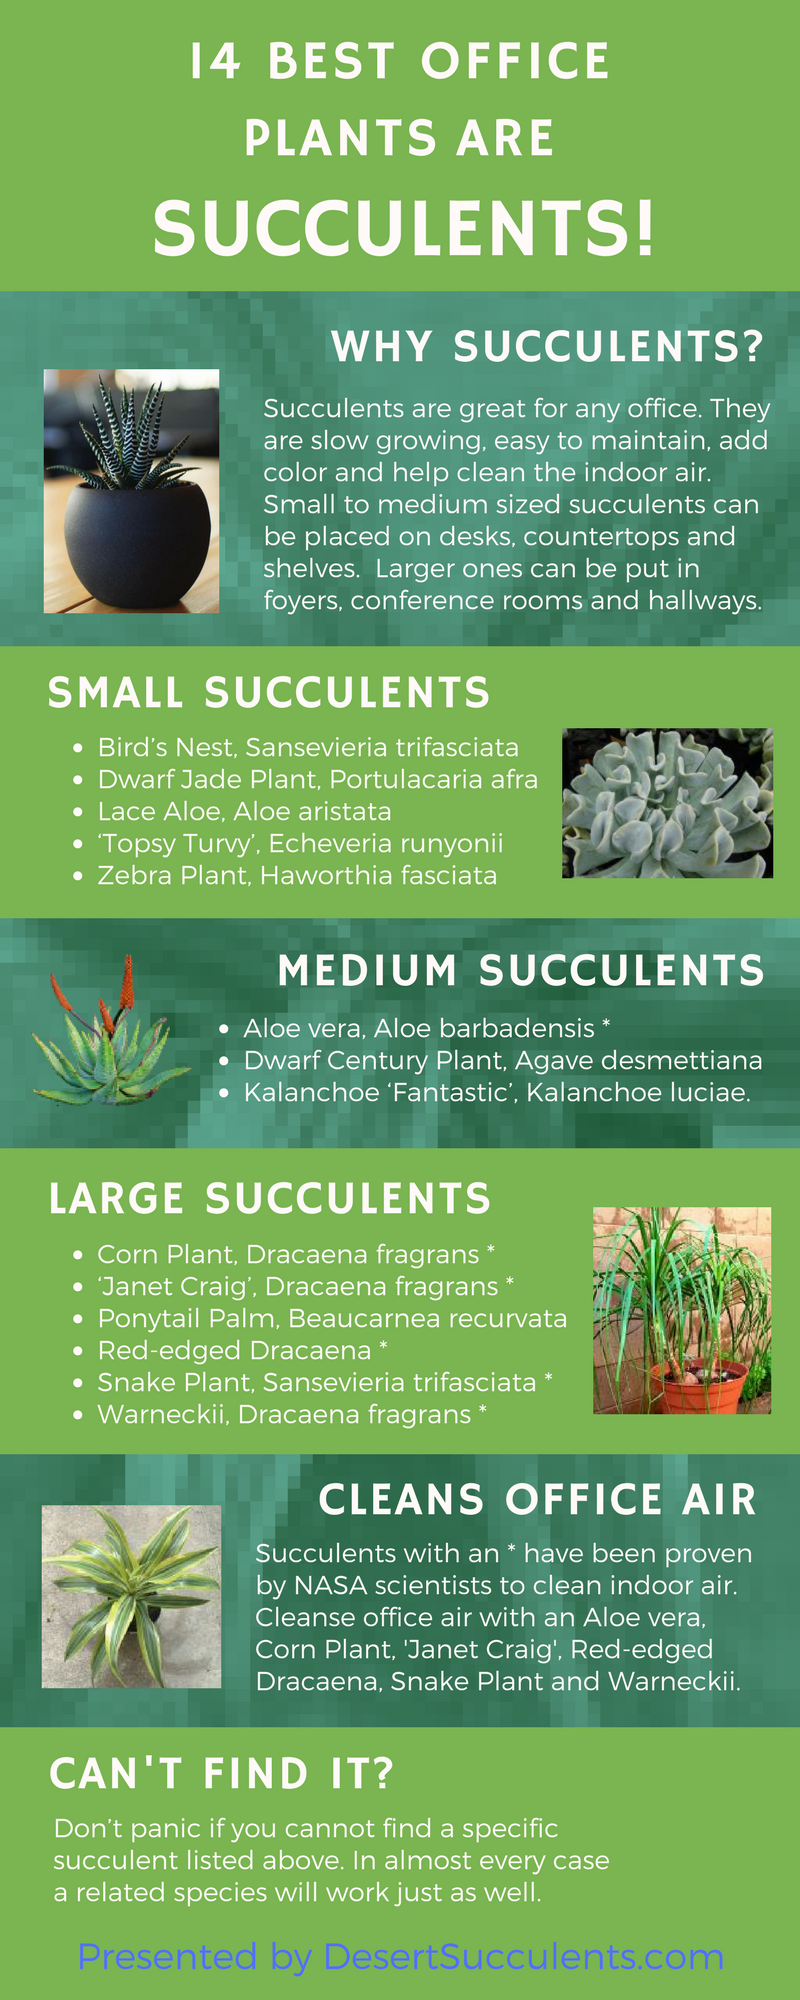 The best office plants are succulents. These are 14 succulents that are easy to take care of, look great and clean indoor air.